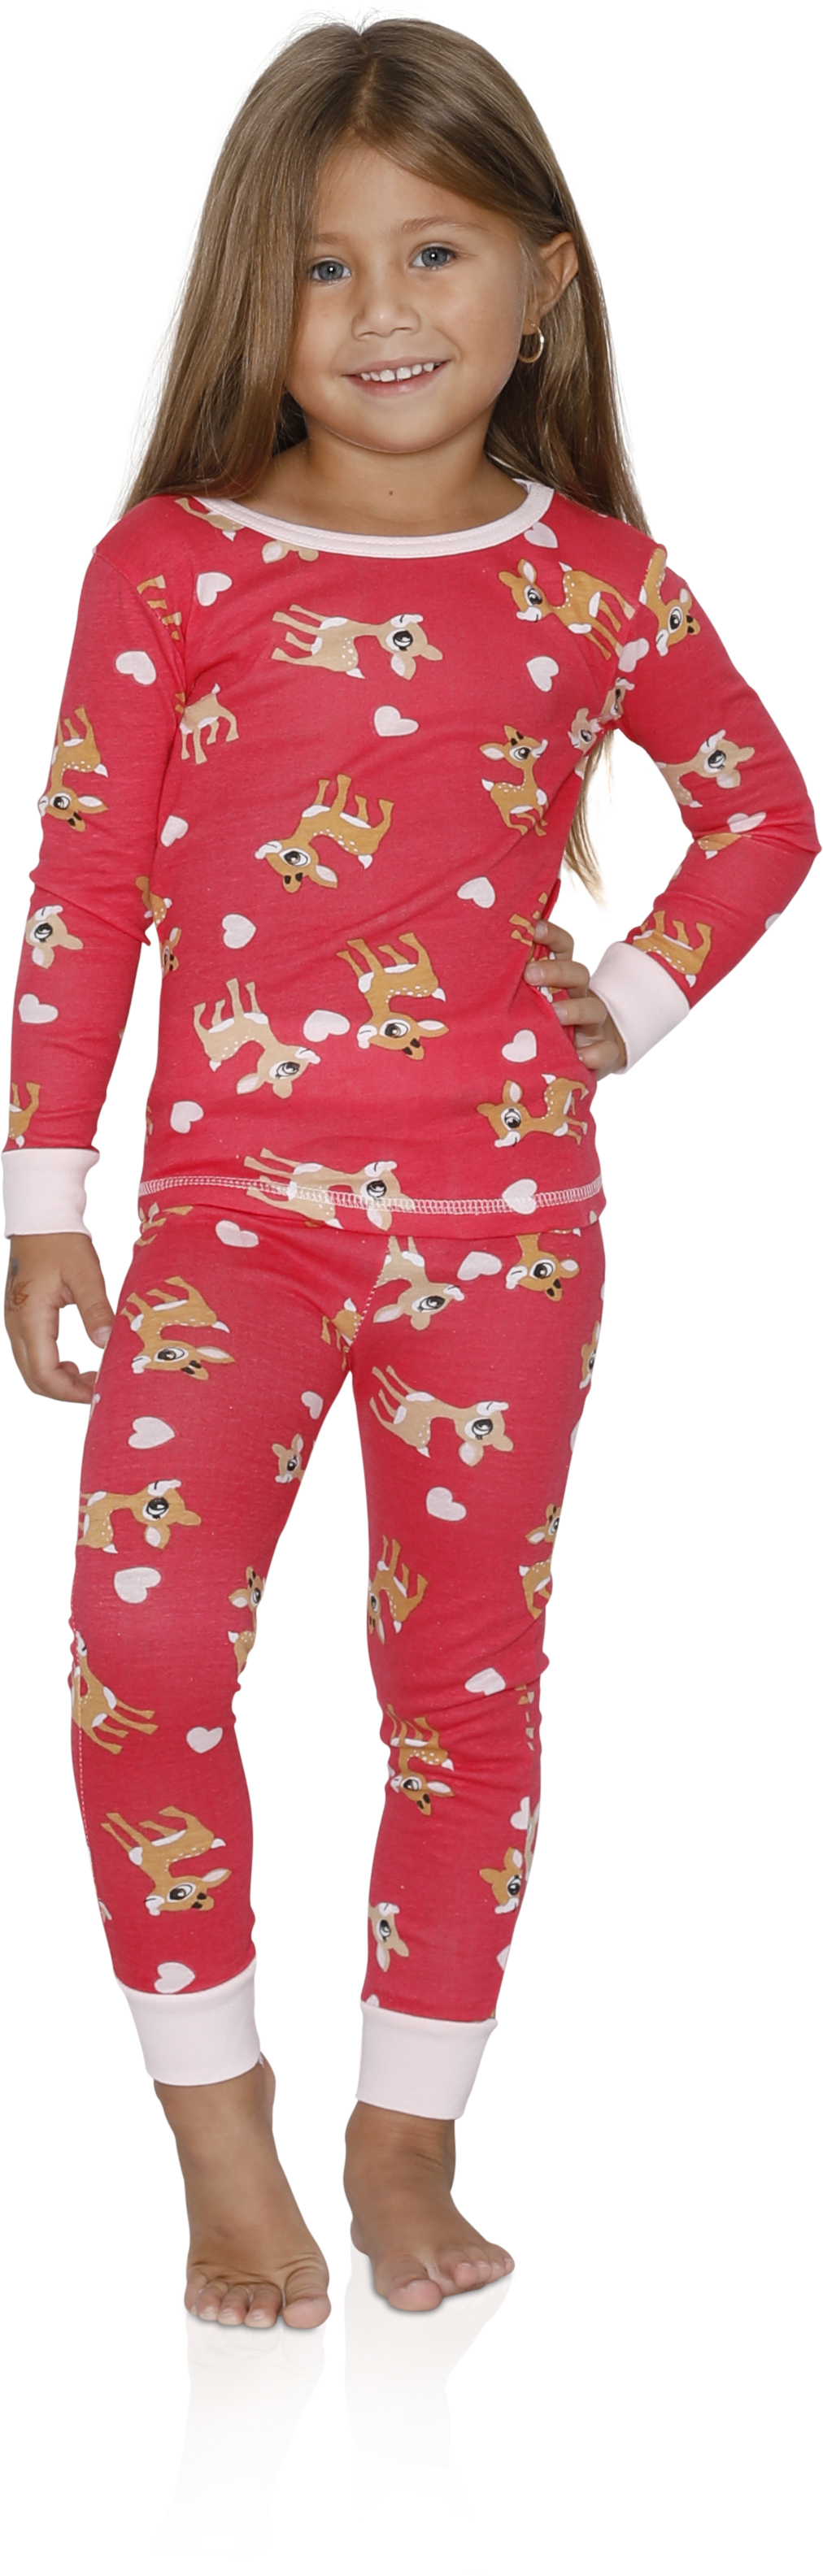 Girls 4 Piece Fancy Cotton Pajamas Sets